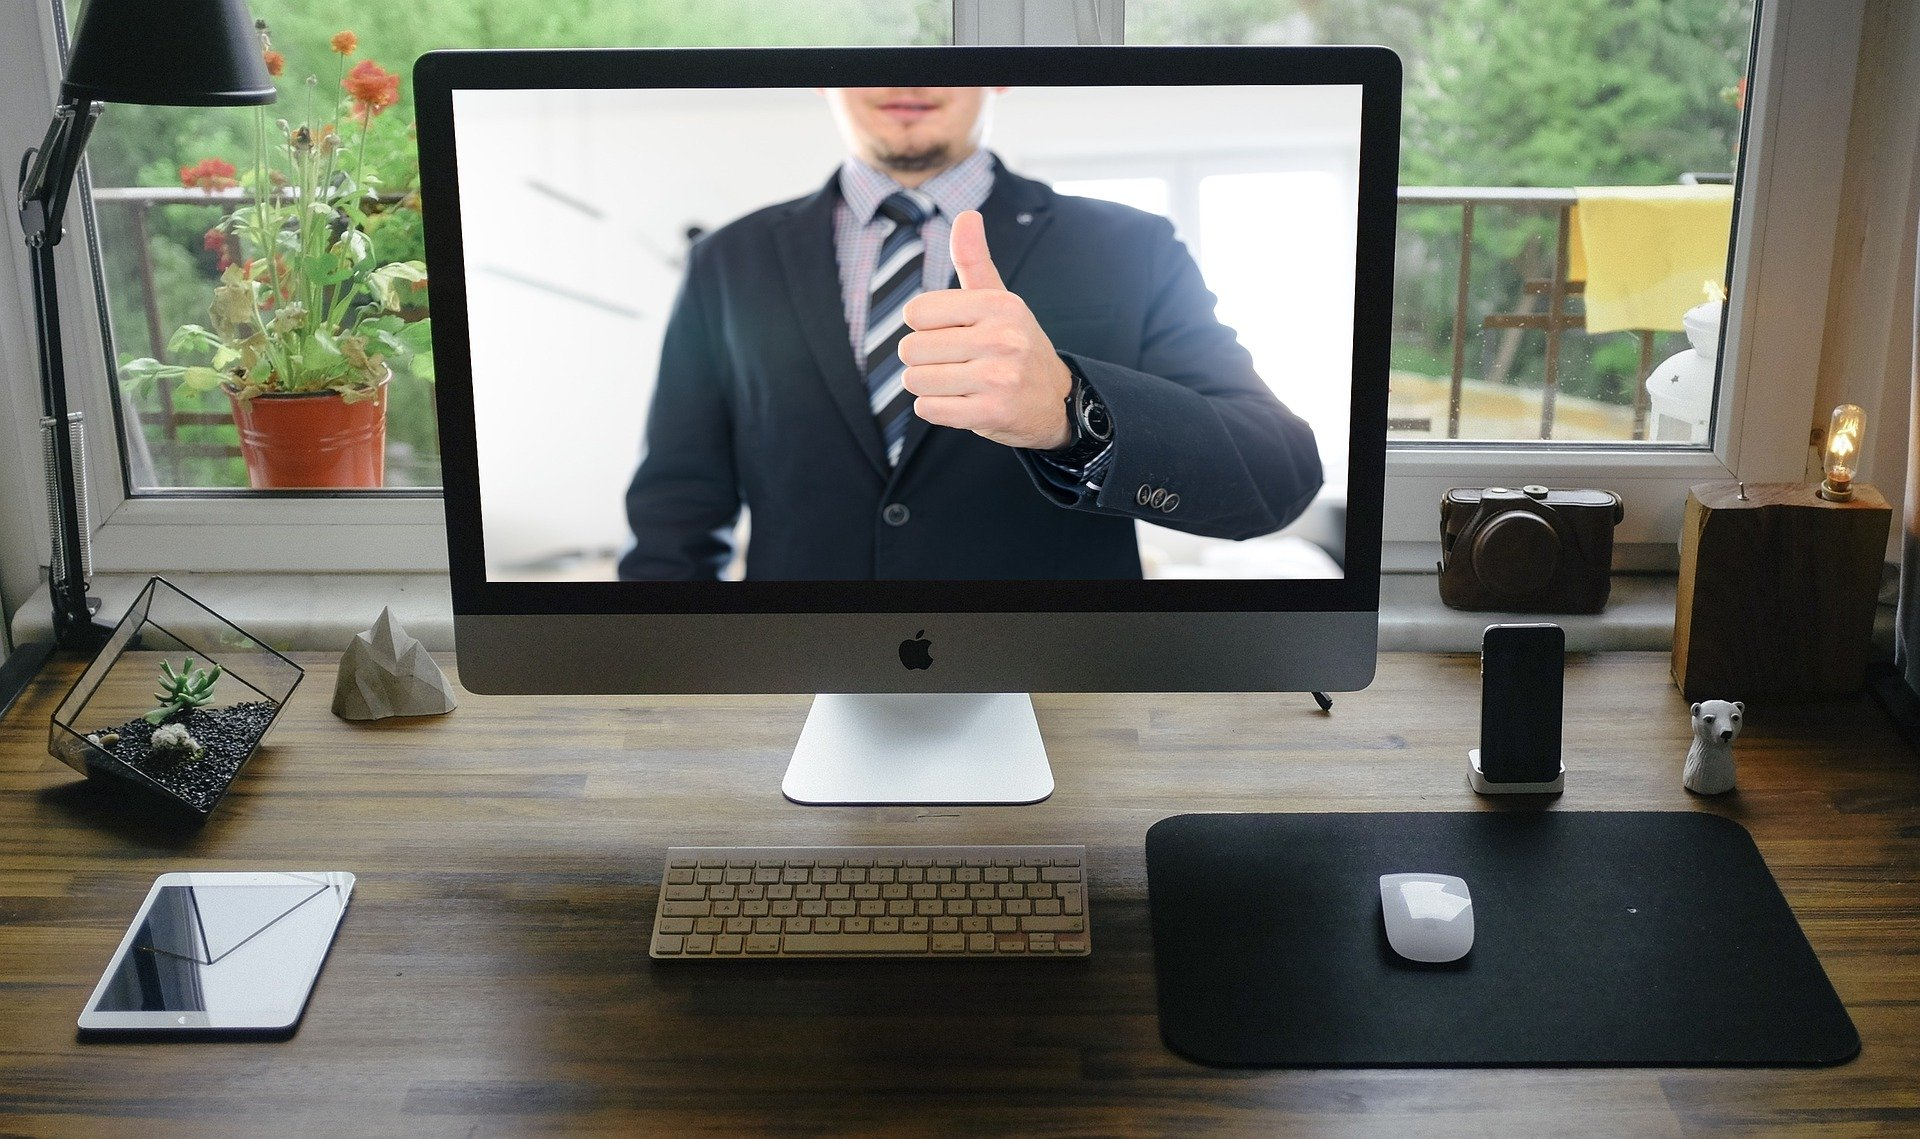 What to Know About Remote Hiring During COVID-19